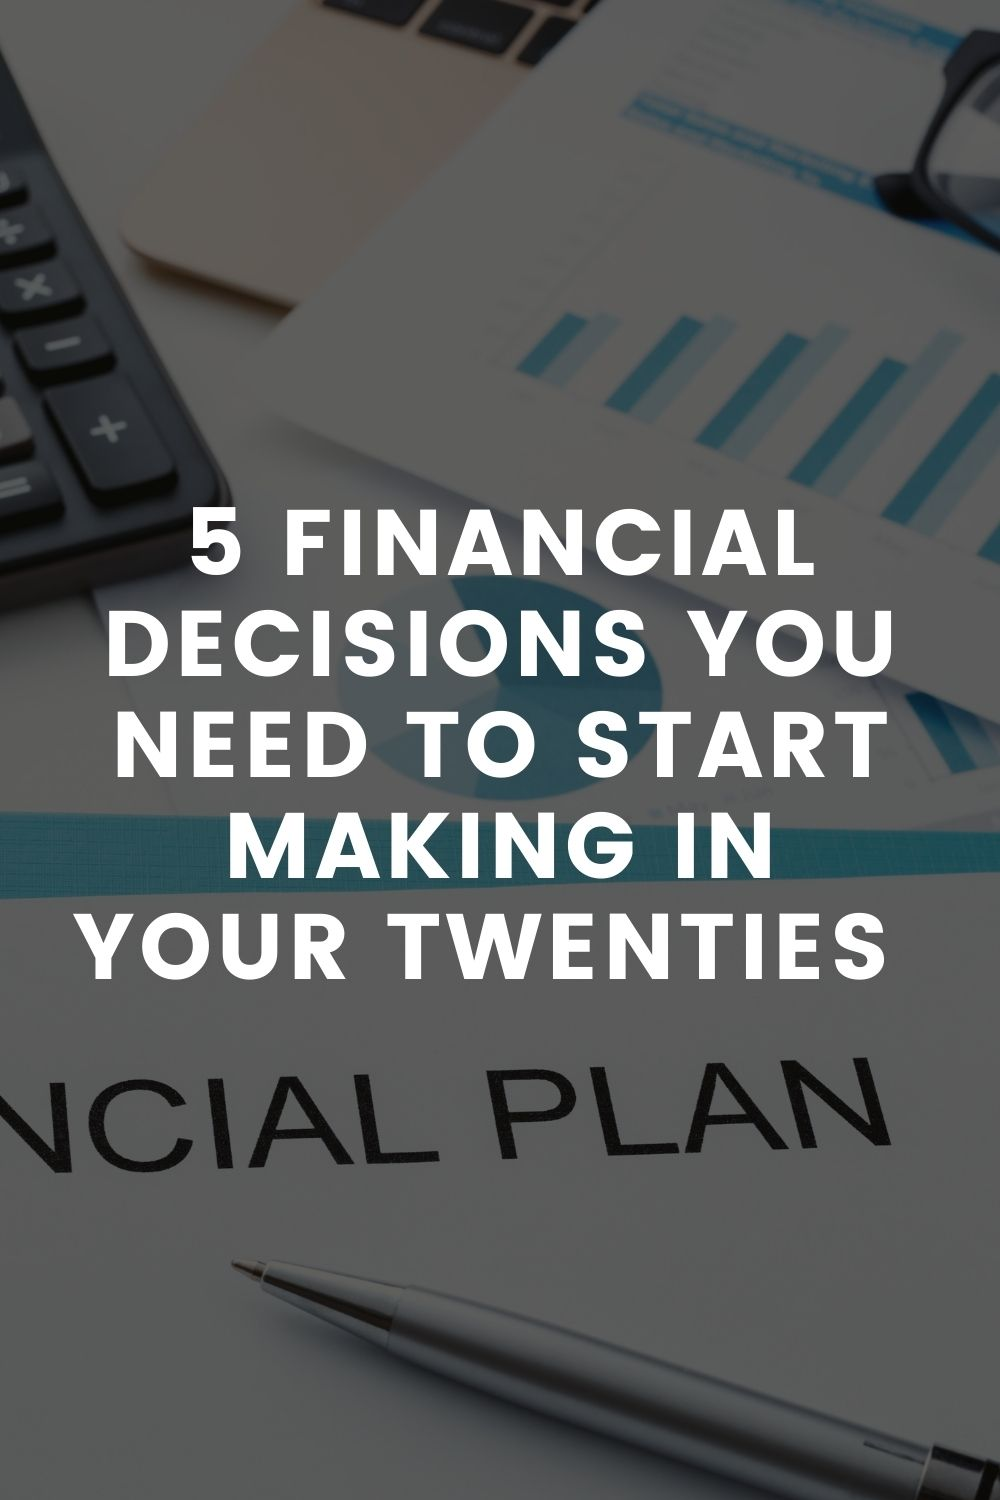 5 Financial Decisions You Need To Start Making In Your Twenties